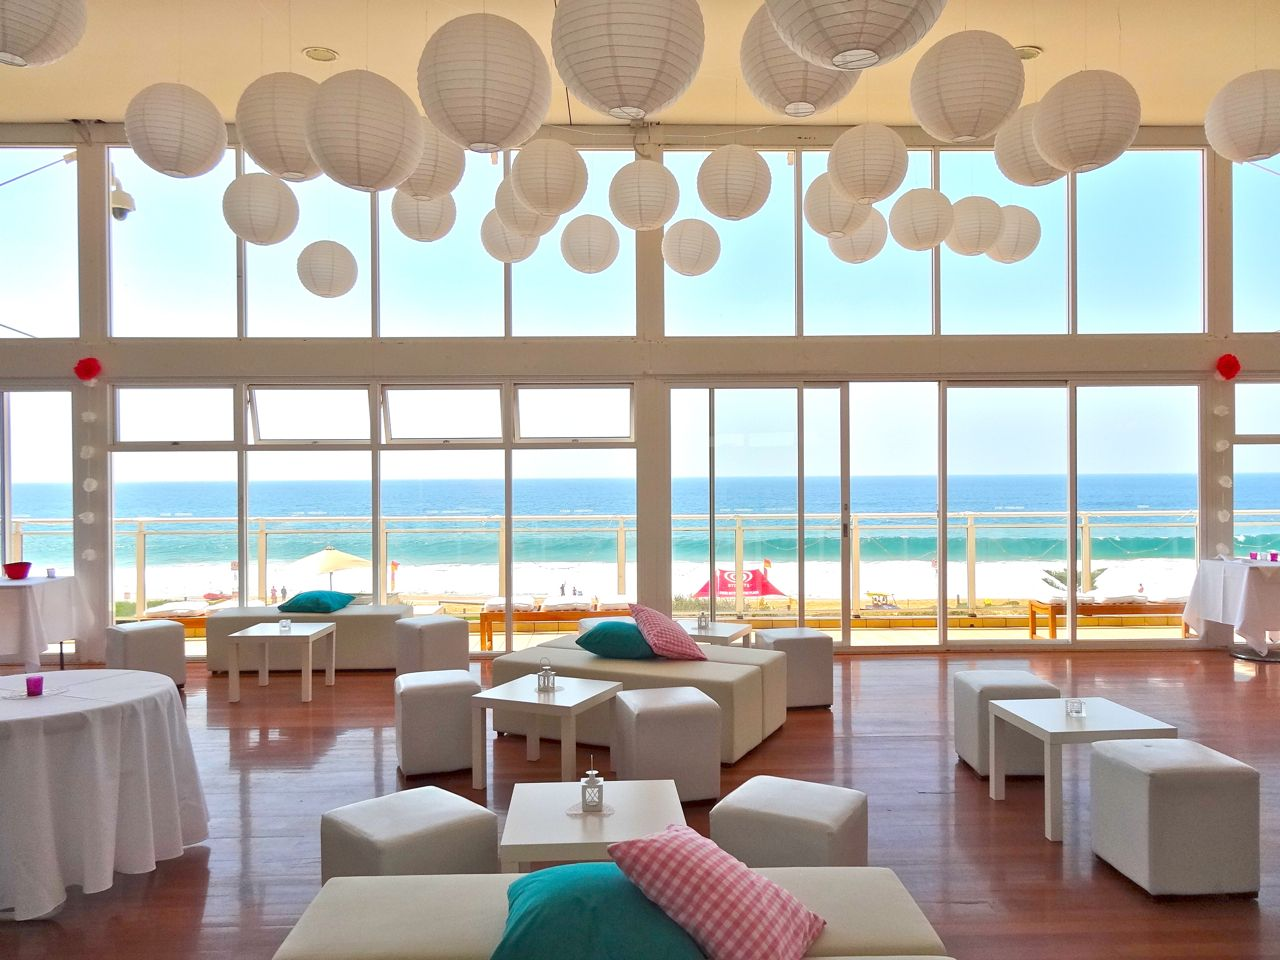 best outdoor wedding venues perth%0A Wedding Reception   Cocktail  Amy  u     Ben      Narrabeen Beach SLSC Catering  and styling by Cloud   Event Management